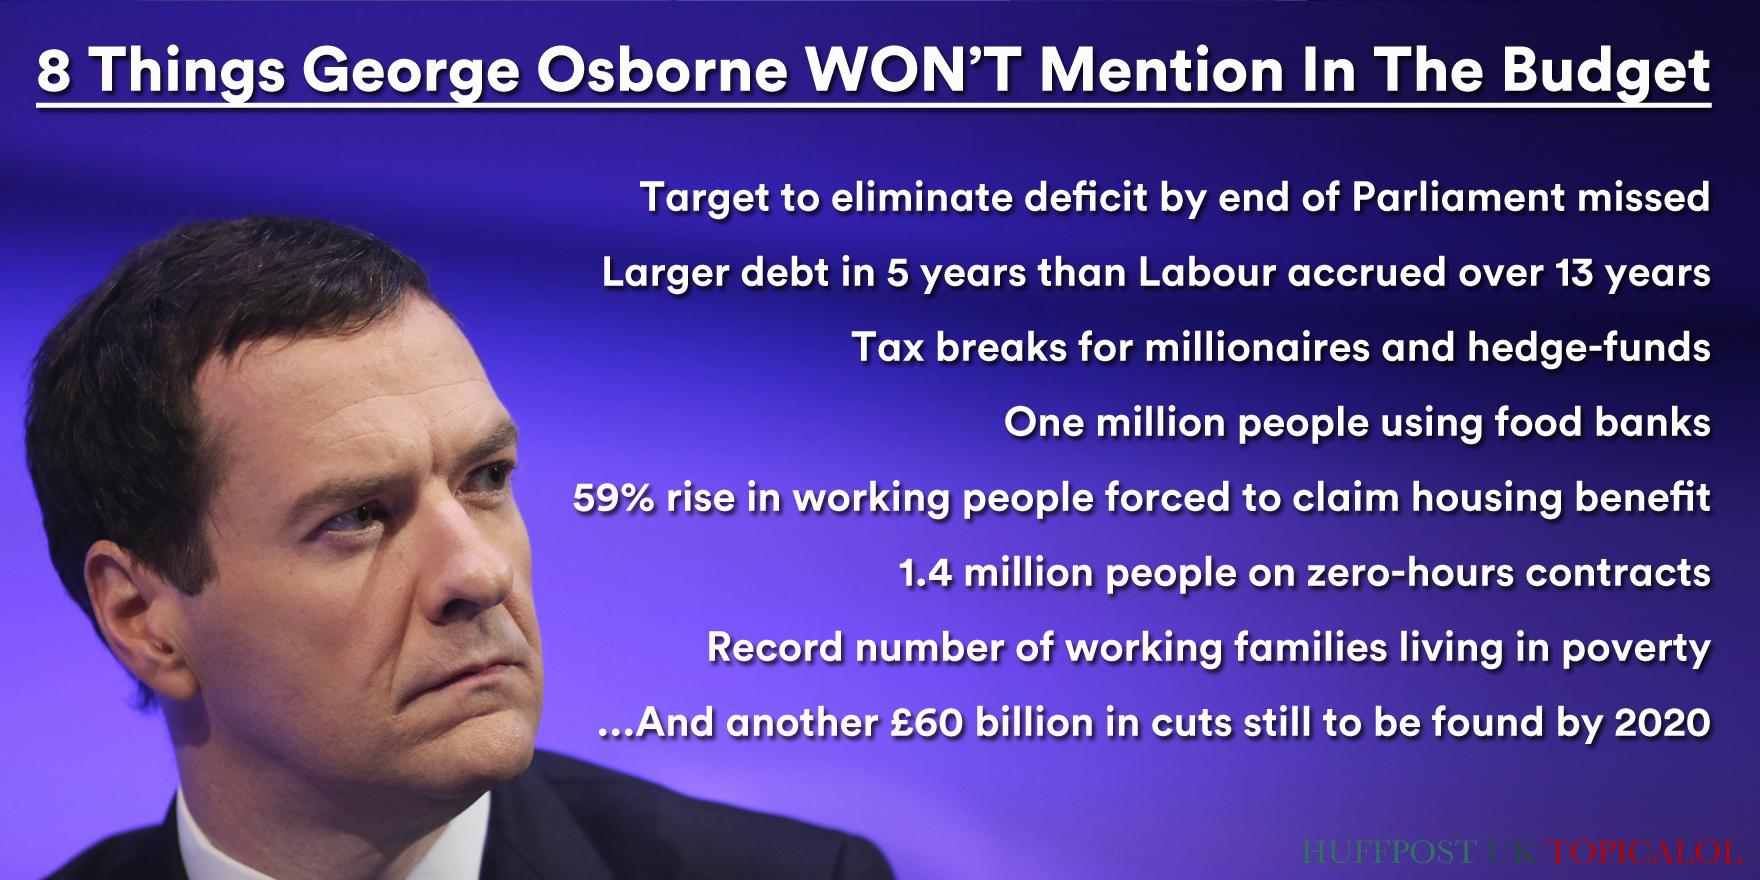 In case you missed it: 8 things Osborne won't mention #Budget2015. (done for @huffpostukcom)  http://t.co/DACUkICEco http://t.co/xAvYzPz6vo